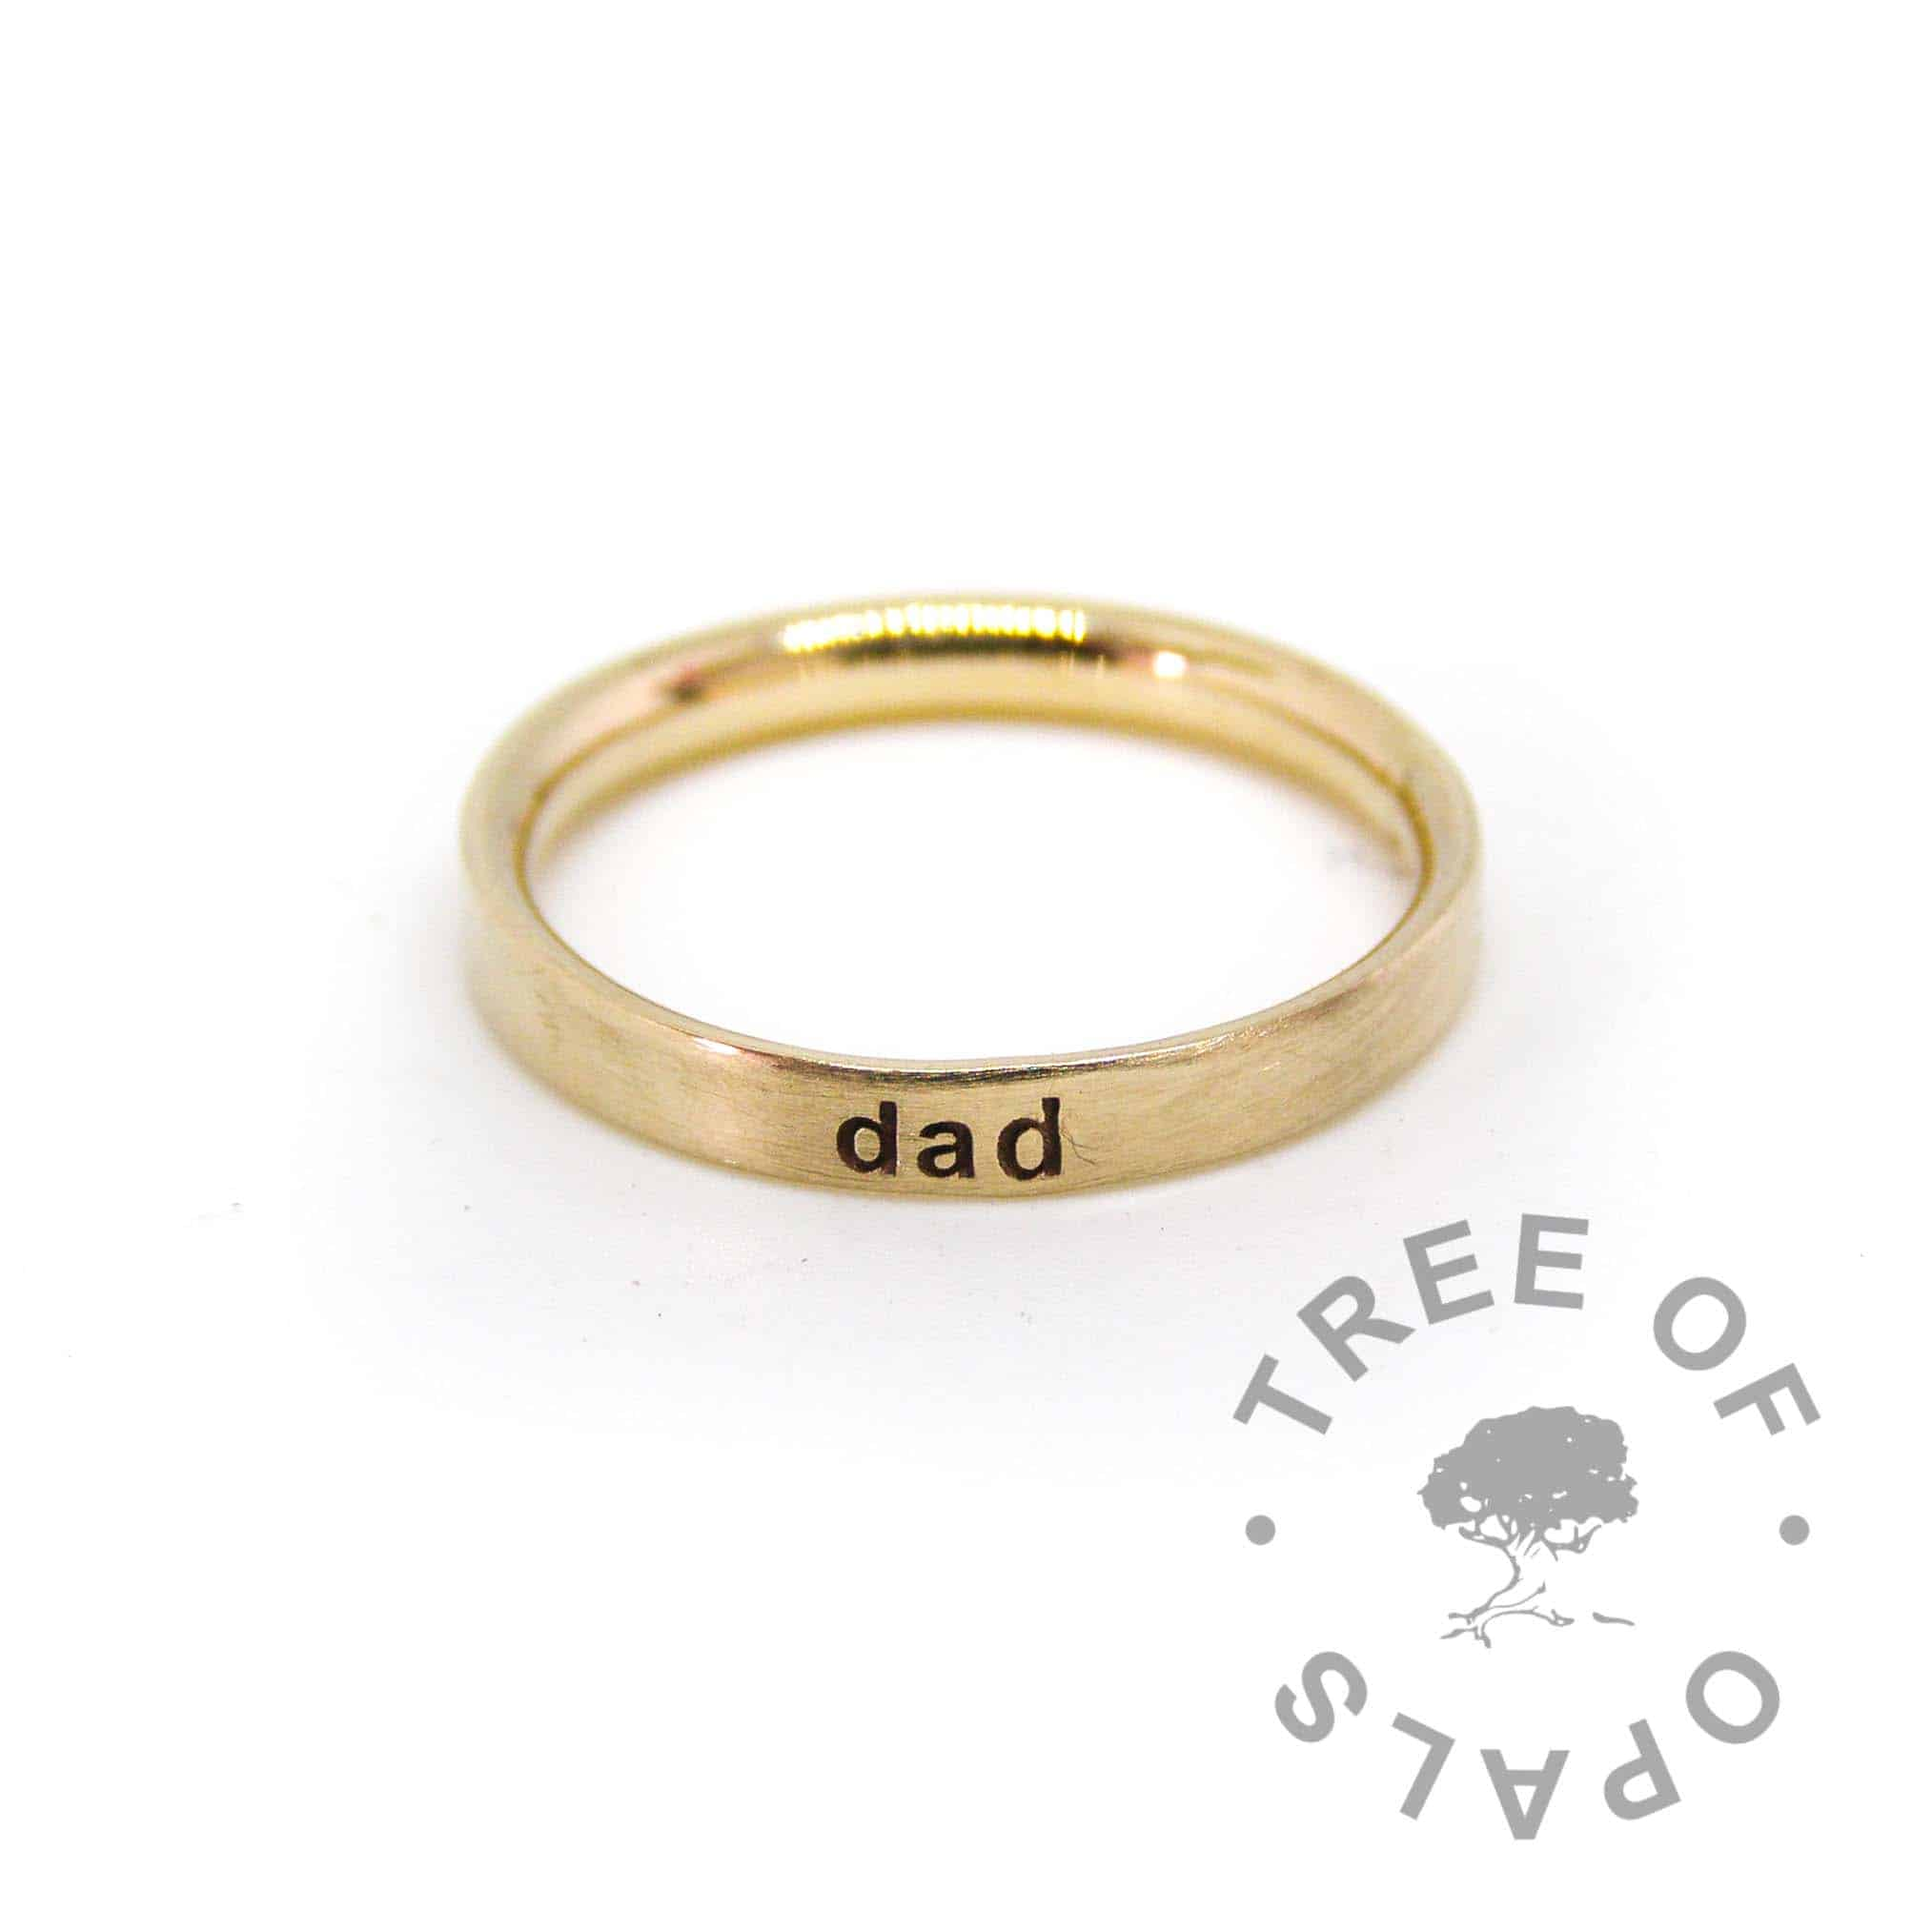 14ct gold ring engraved. Hallmarked solid 14ct yellow gold 2.6mm wide, 1.3mm deep comfort fit D-wire, handmade from scratch